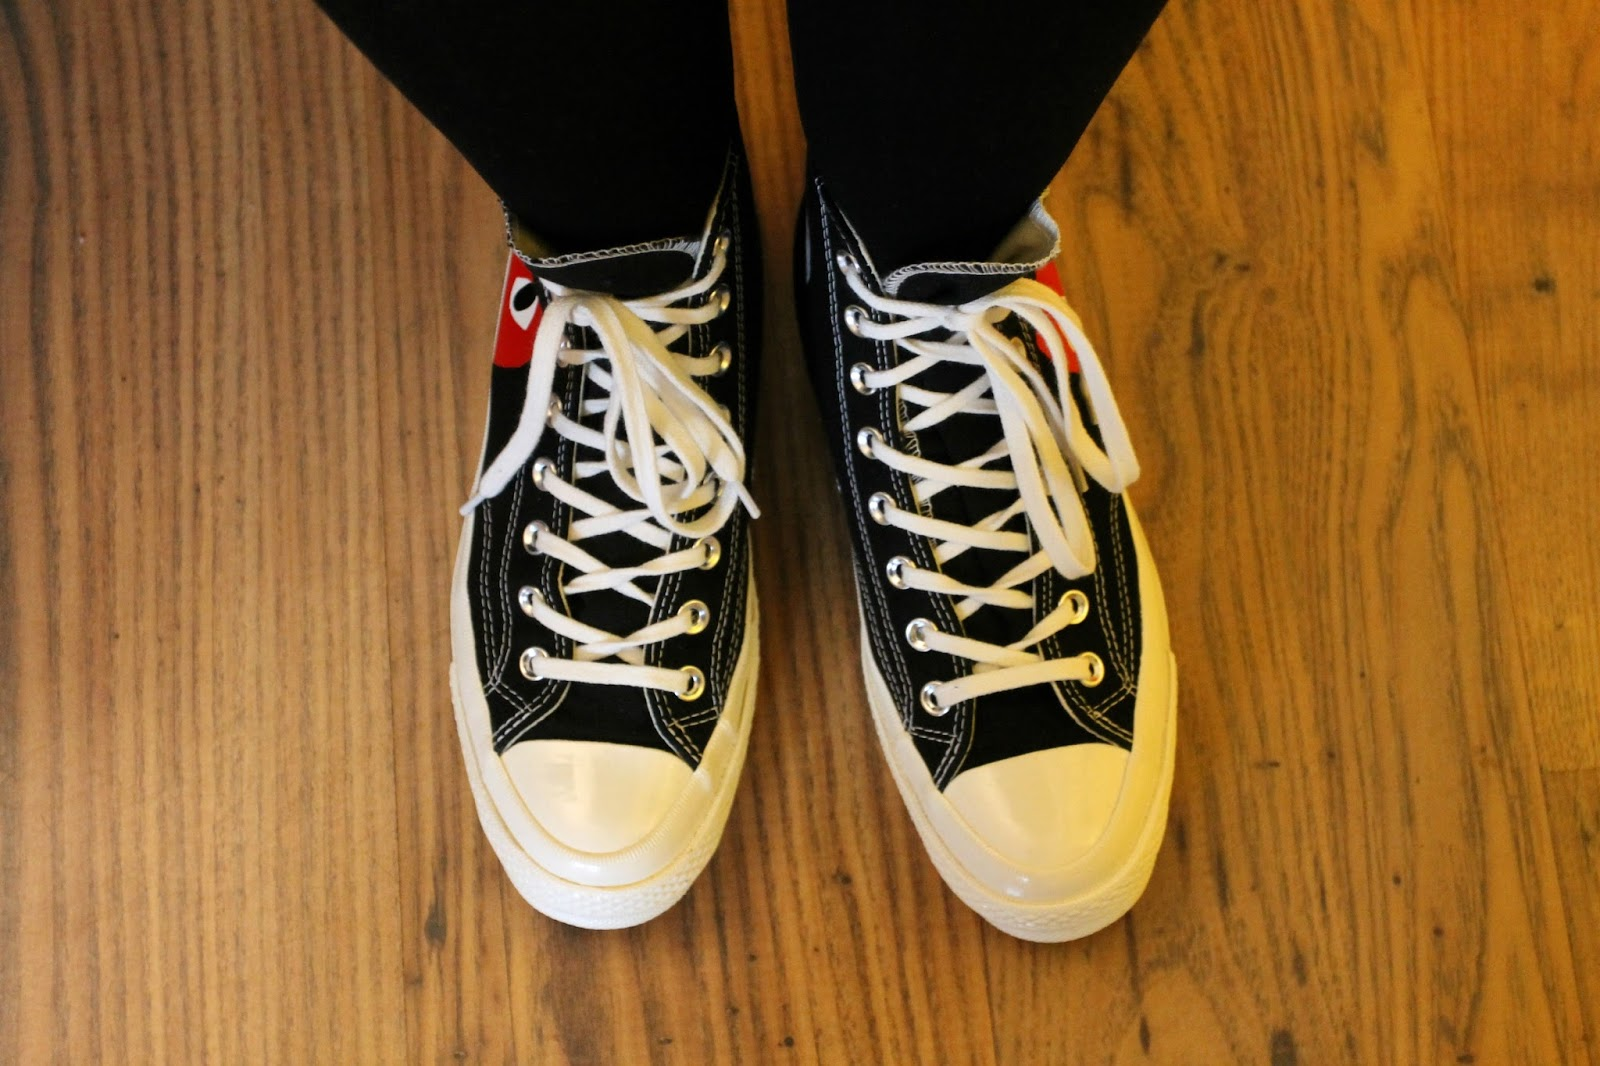 cdg play converse outfit